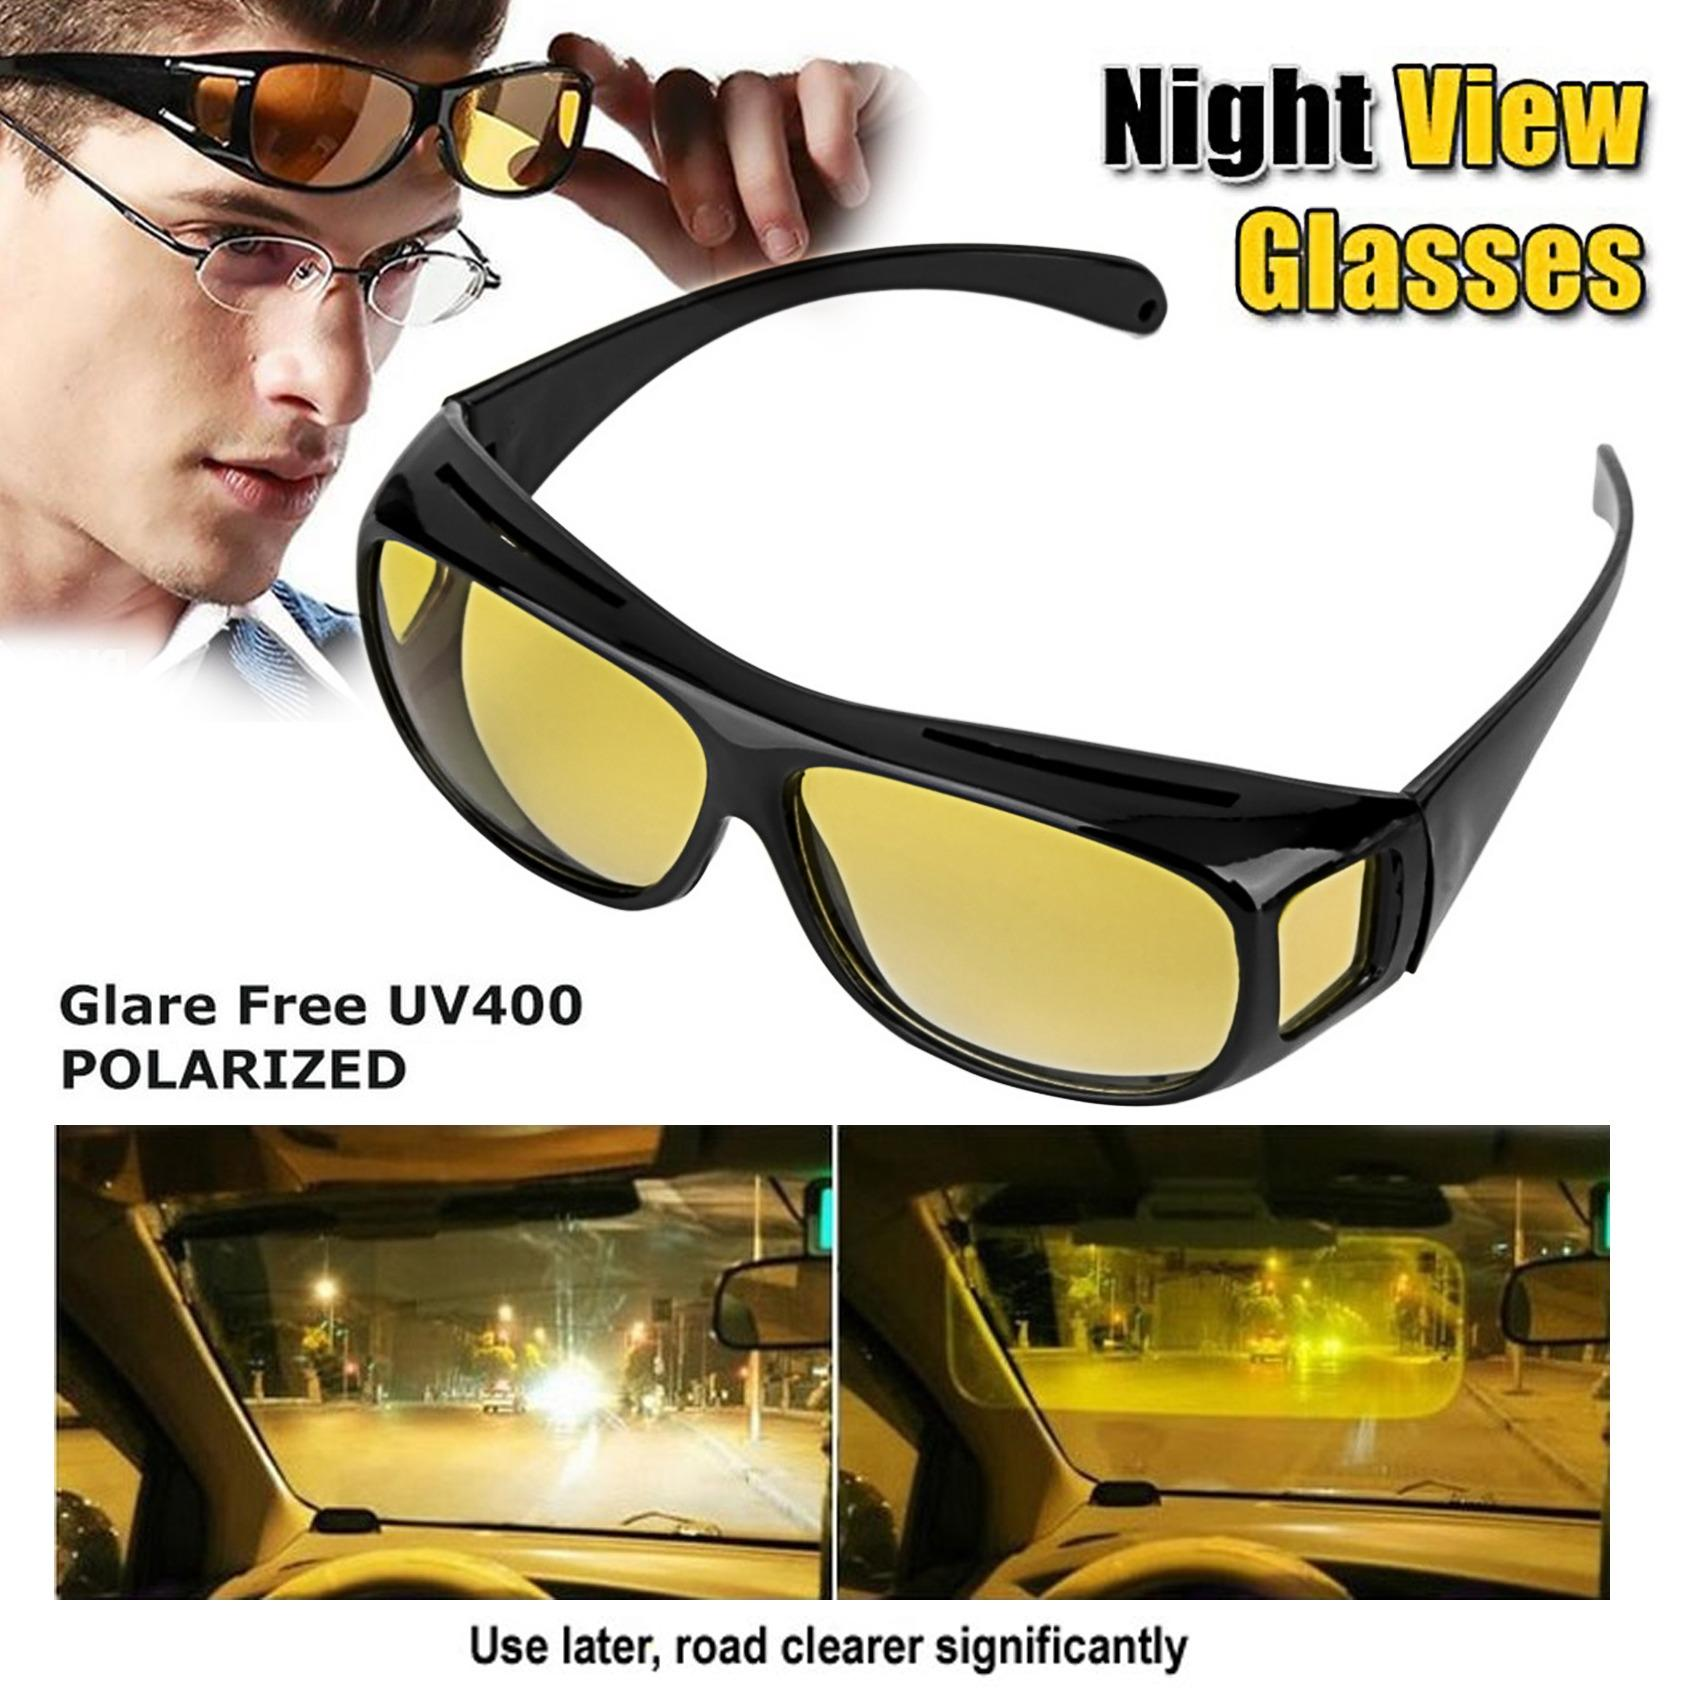 91d1f409592f Night Vision Glasses for sale - Night Glasses online brands